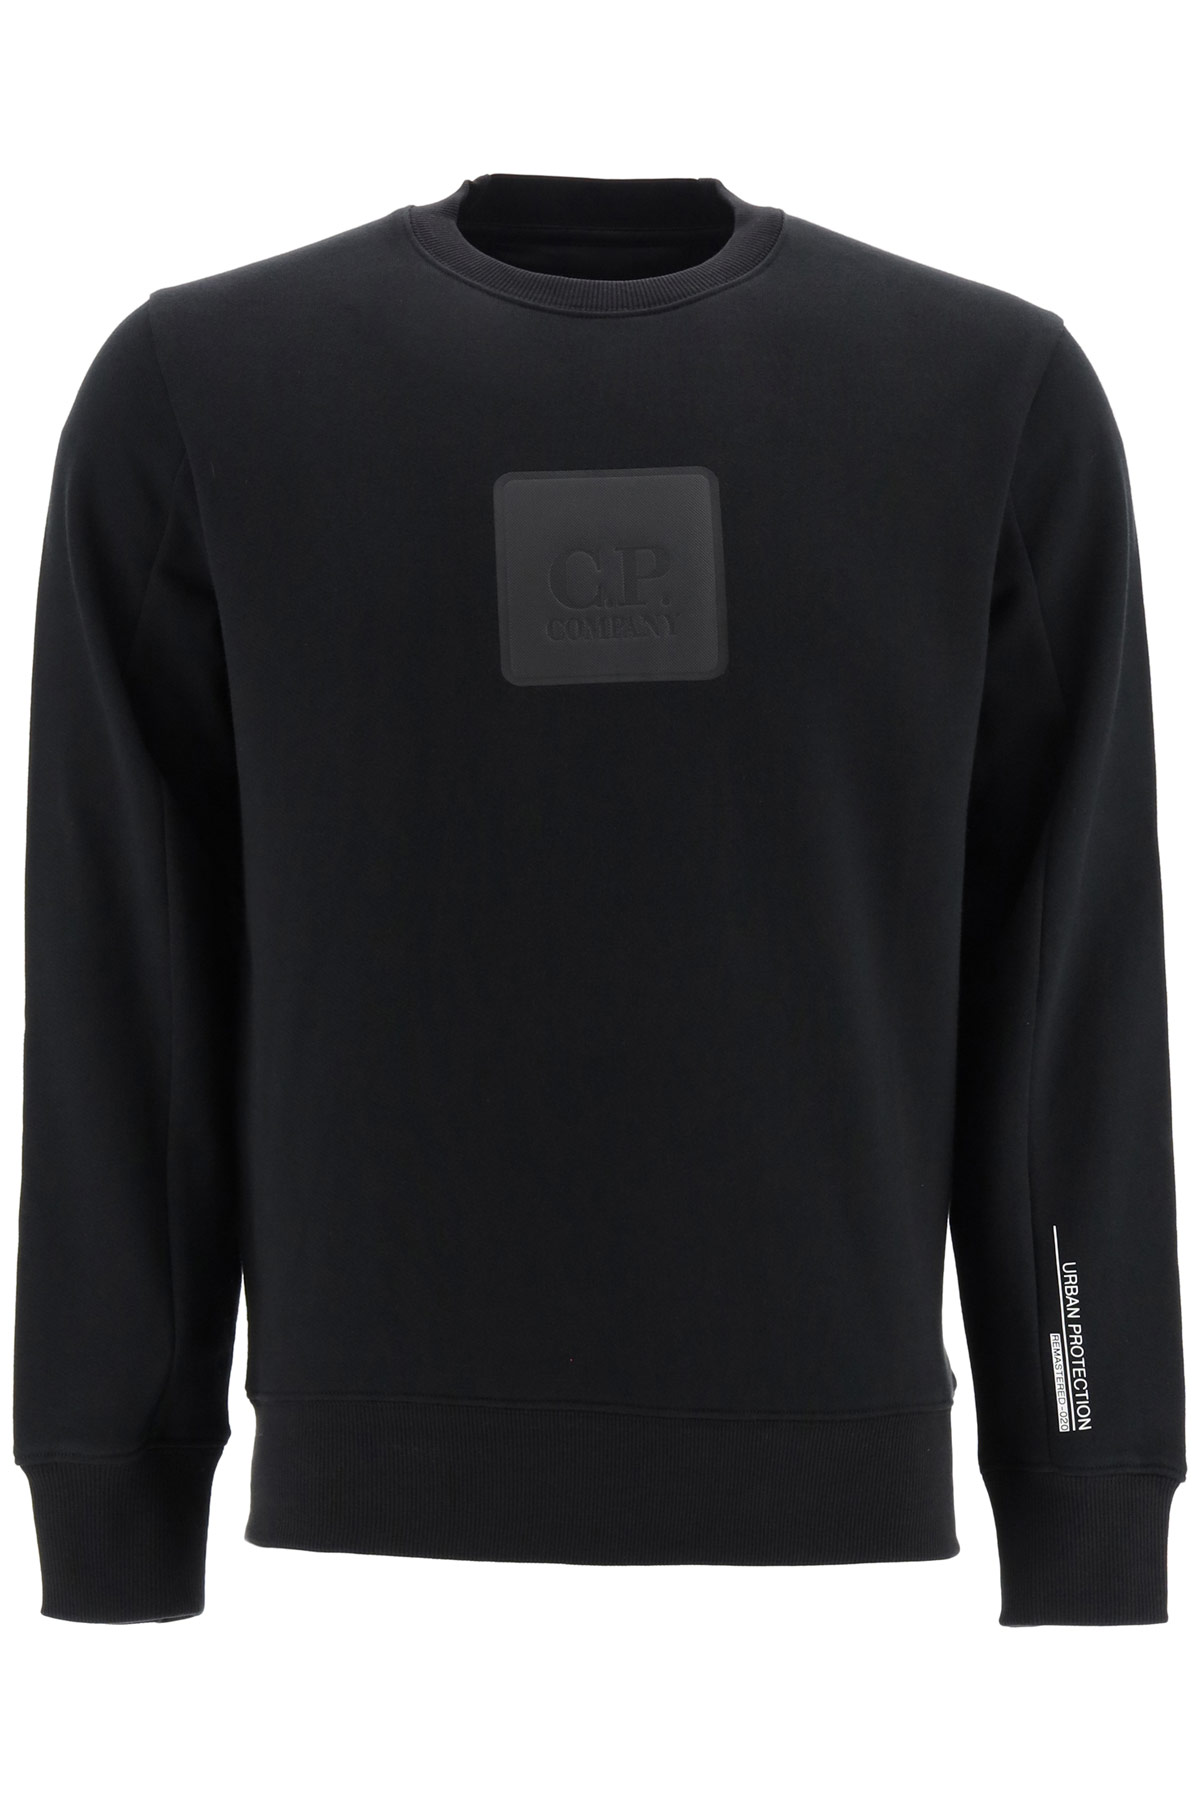 cp company sweatshirt with logo s black cotton